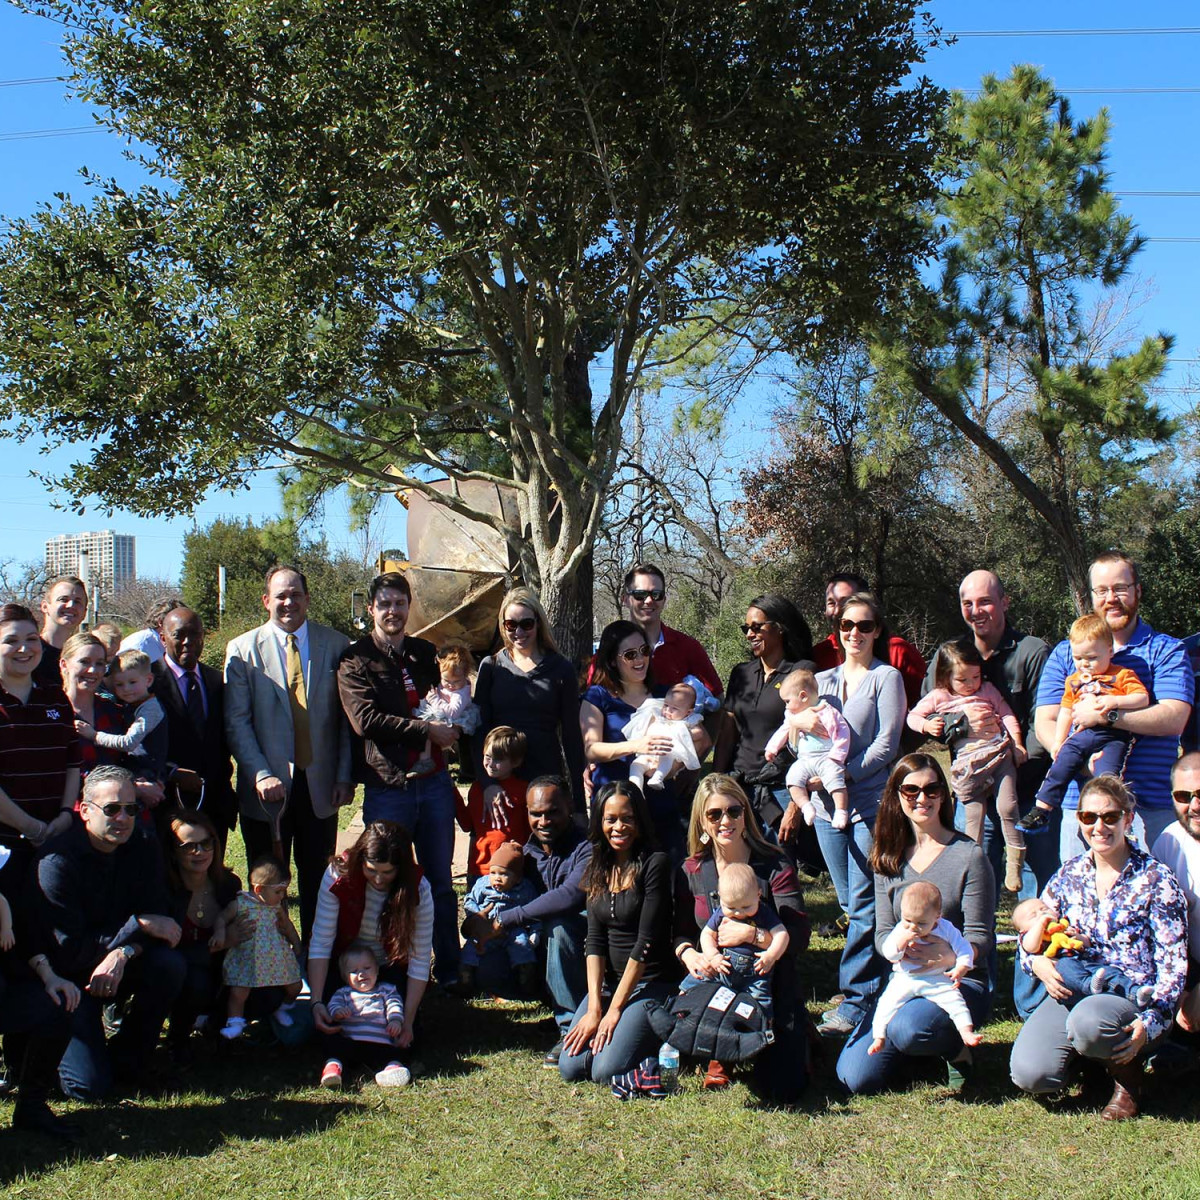 Apache tree planting, Memorial Park, Jan. 2016, redbud trees for babies